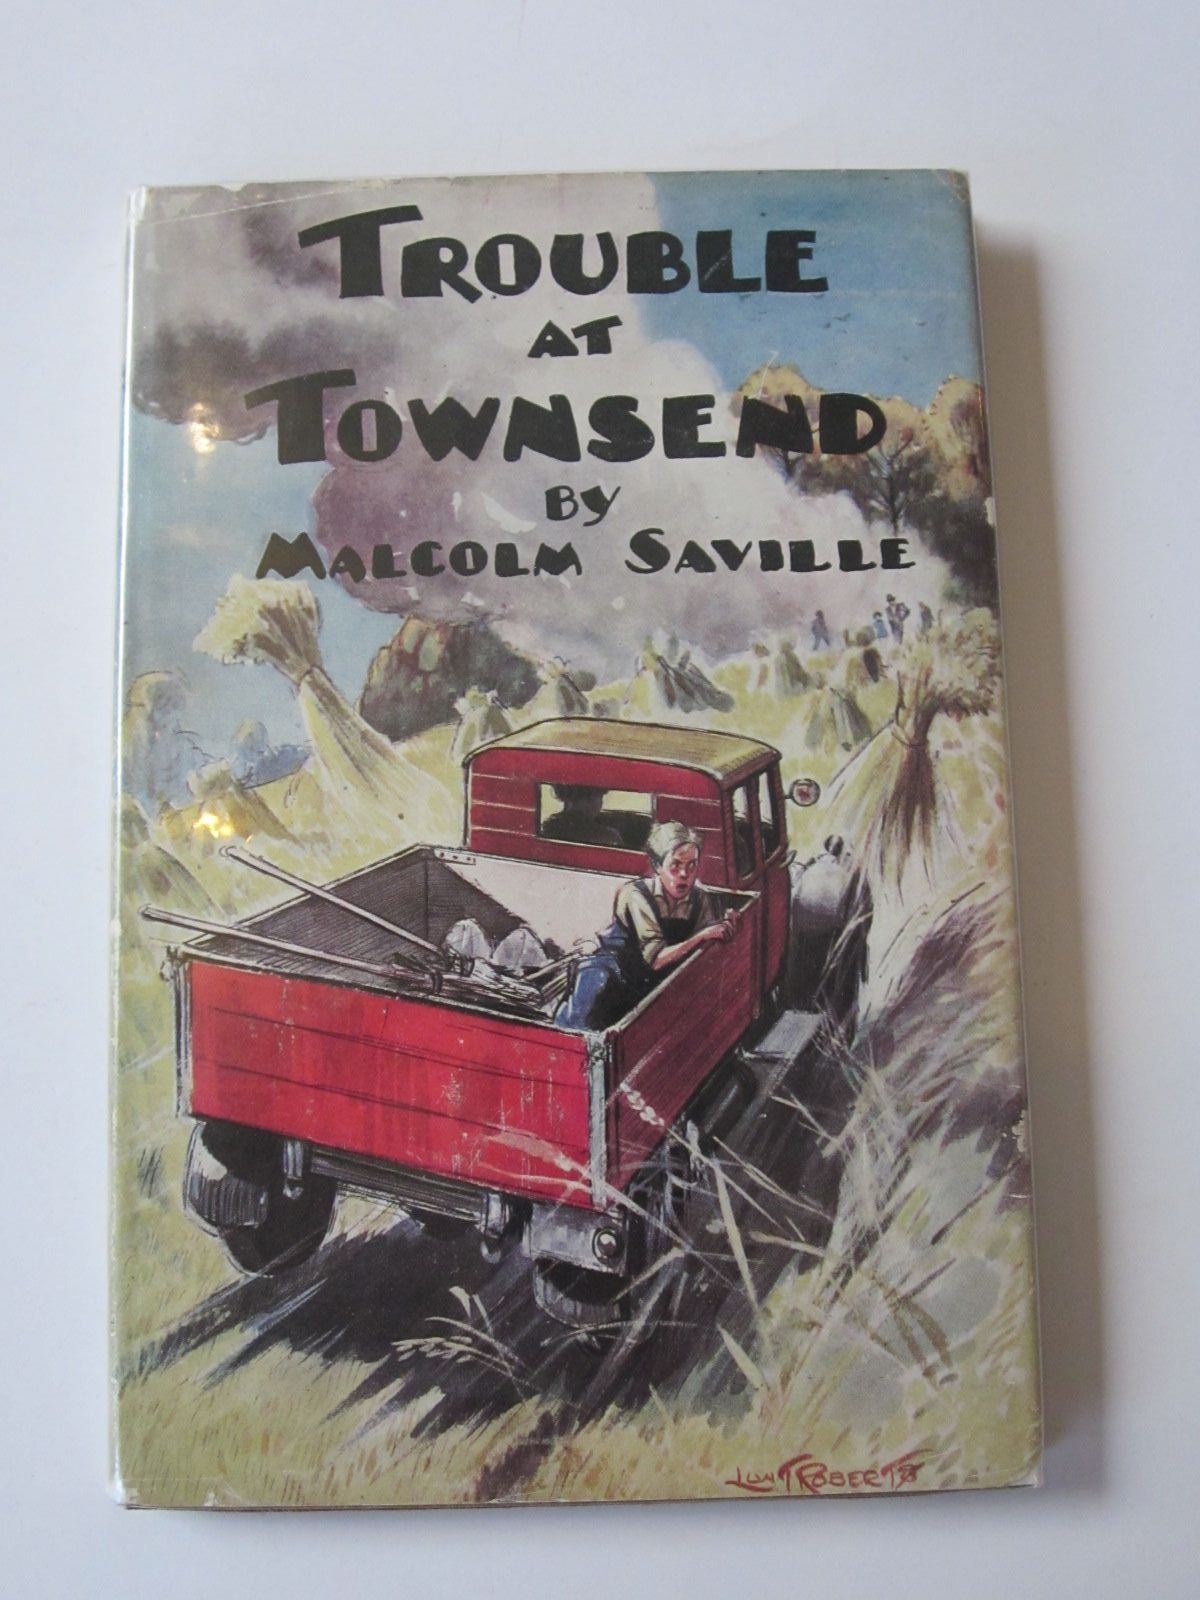 Photo of TROUBLE AT TOWNSEND written by Saville, Malcolm illustrated by Roberts, Lunt published by Transatlantic Arts Ltd. (STOCK CODE: 1308471)  for sale by Stella & Rose's Books